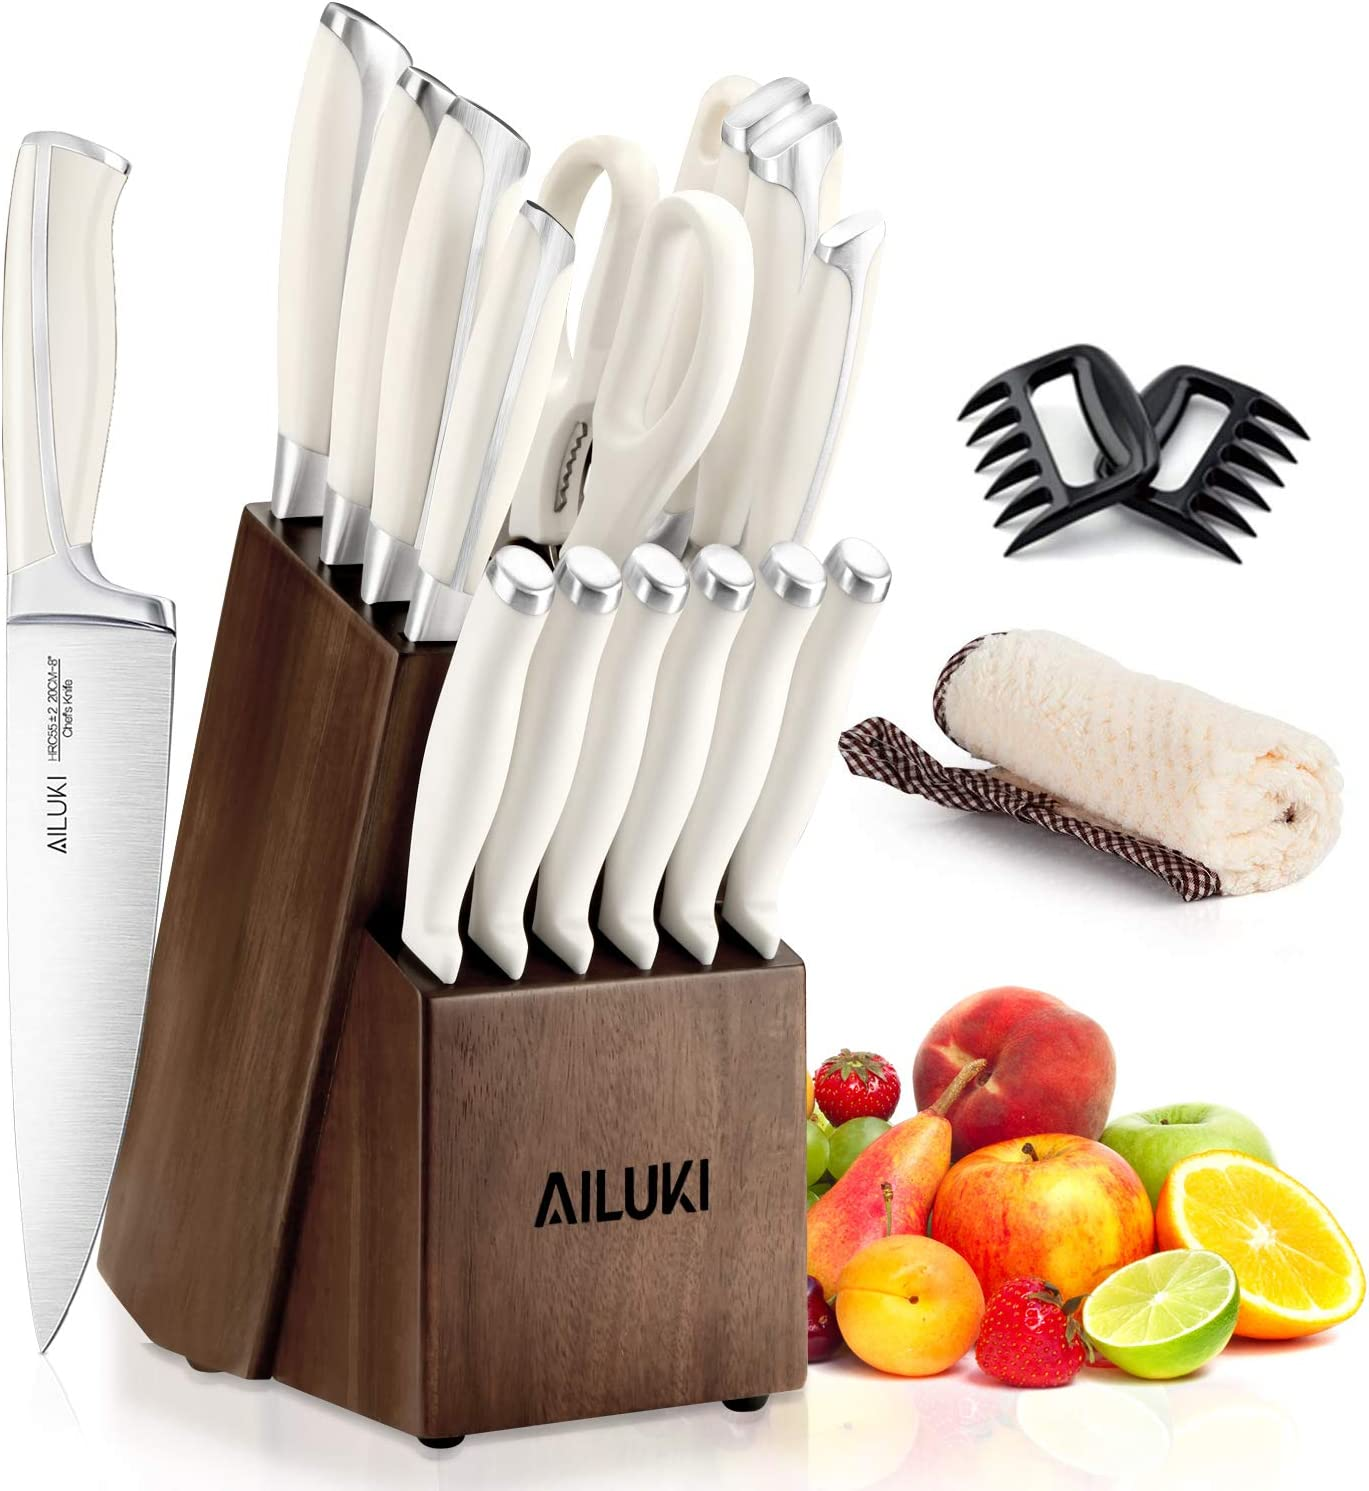 Knife Set, Kitchen Knife Set with Block, AILUKI 19 Pieces Stainless Steel Knife Set, Ergonomic Handle for Chef Knife Set with Gift Box, Ultra Sharp, Best Choice for Cooking -White